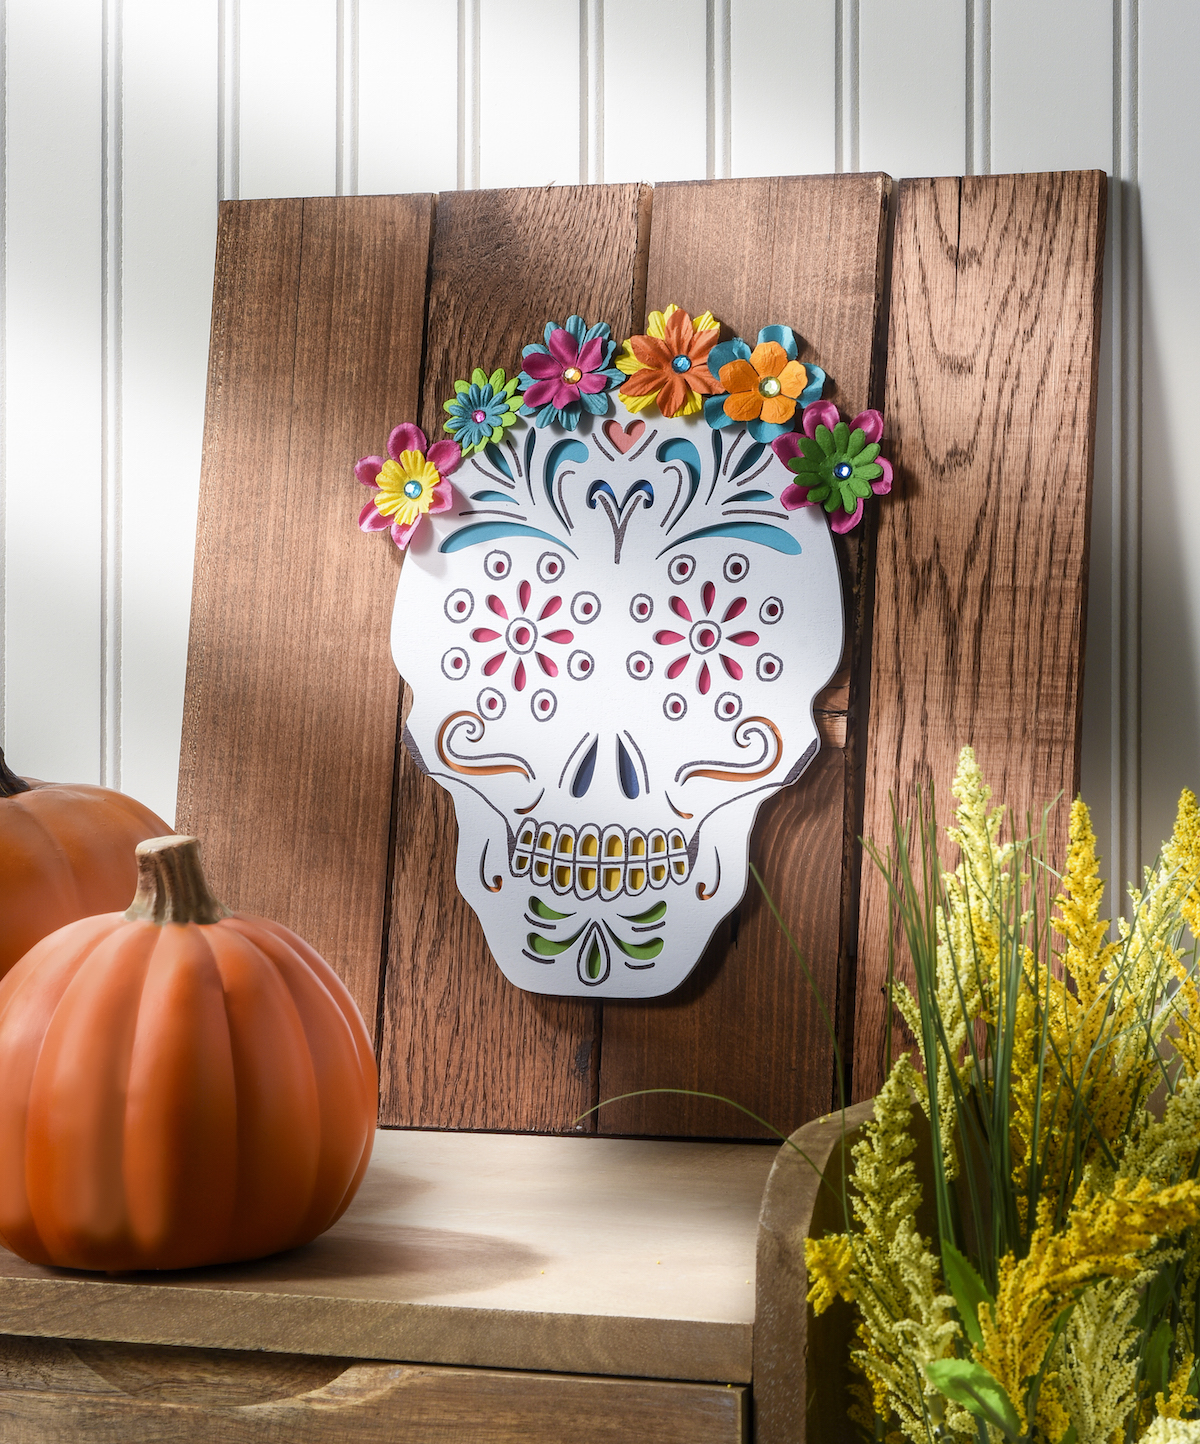 This unique calavera (skull) art was made using a recycled pallet. Perfect for Dia de Los Muertos, but you can keep it up all year!